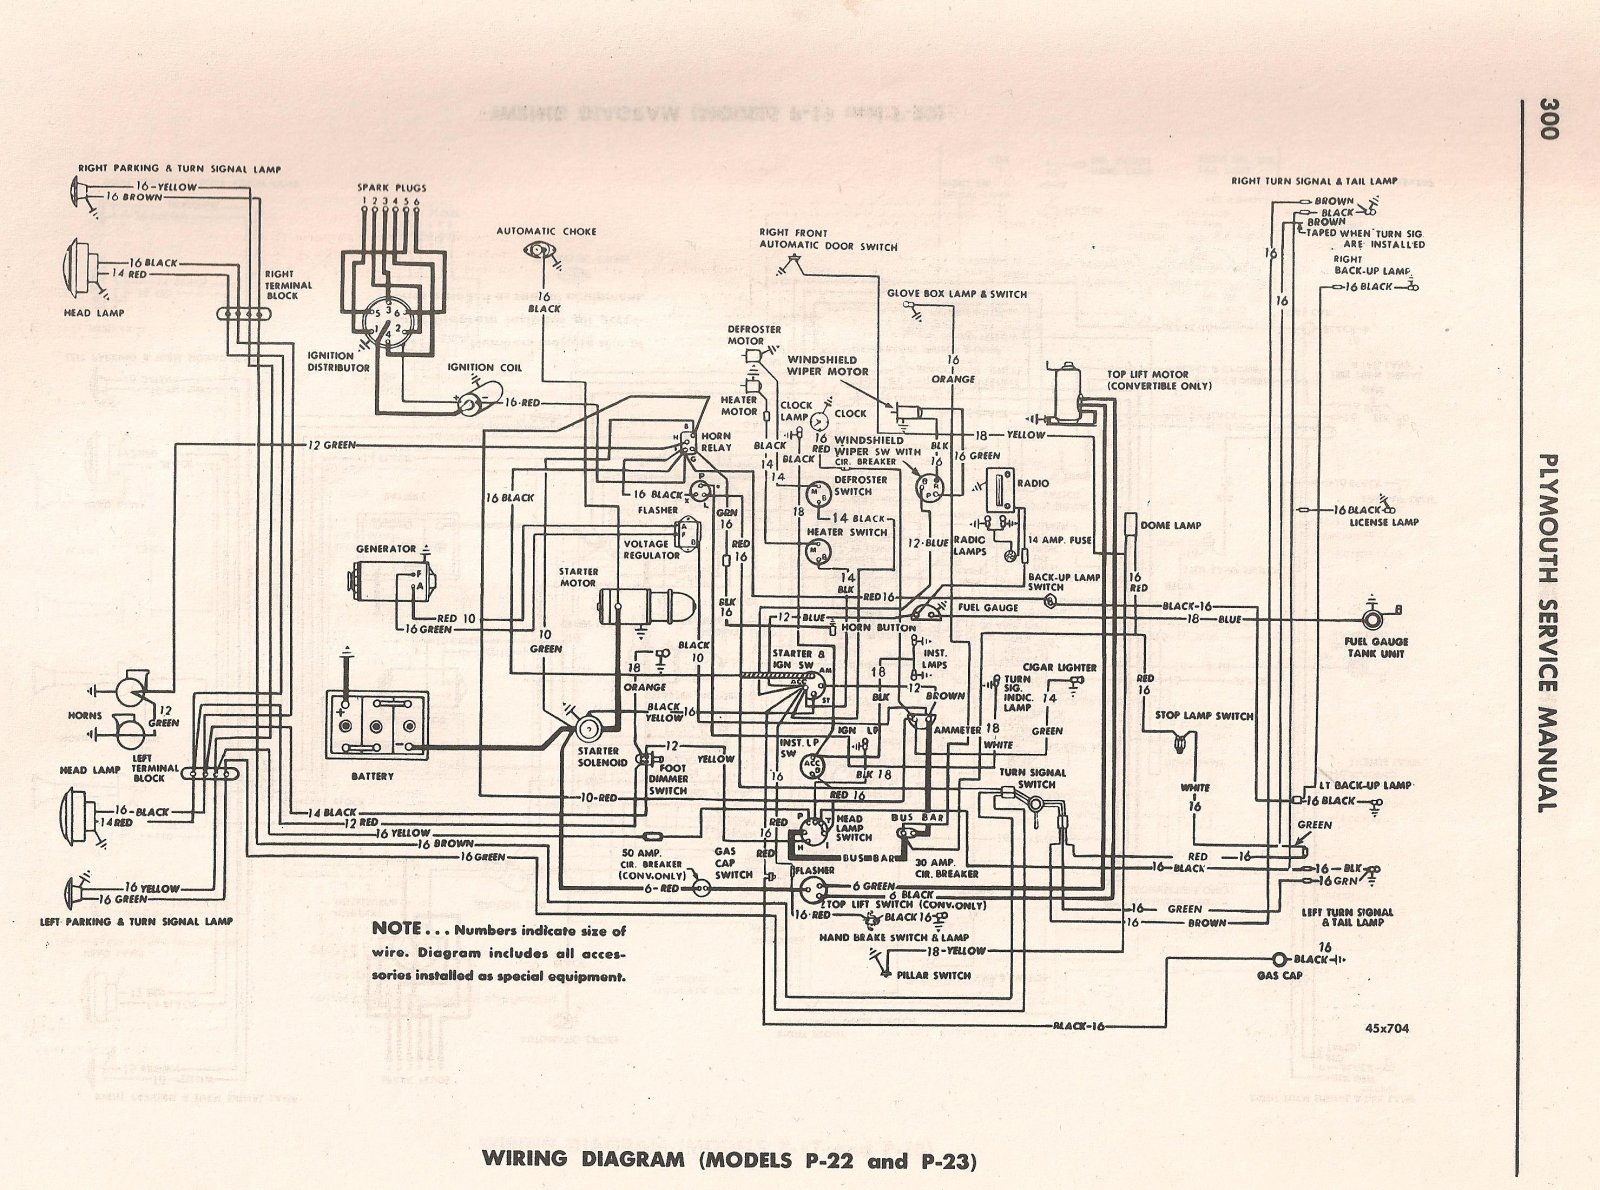 hight resolution of hot rods 1952 plymouth 6 12 volt page 3 the h a m b 001 jpg 1946 plymouth 6 volt positive ground wiring diagram